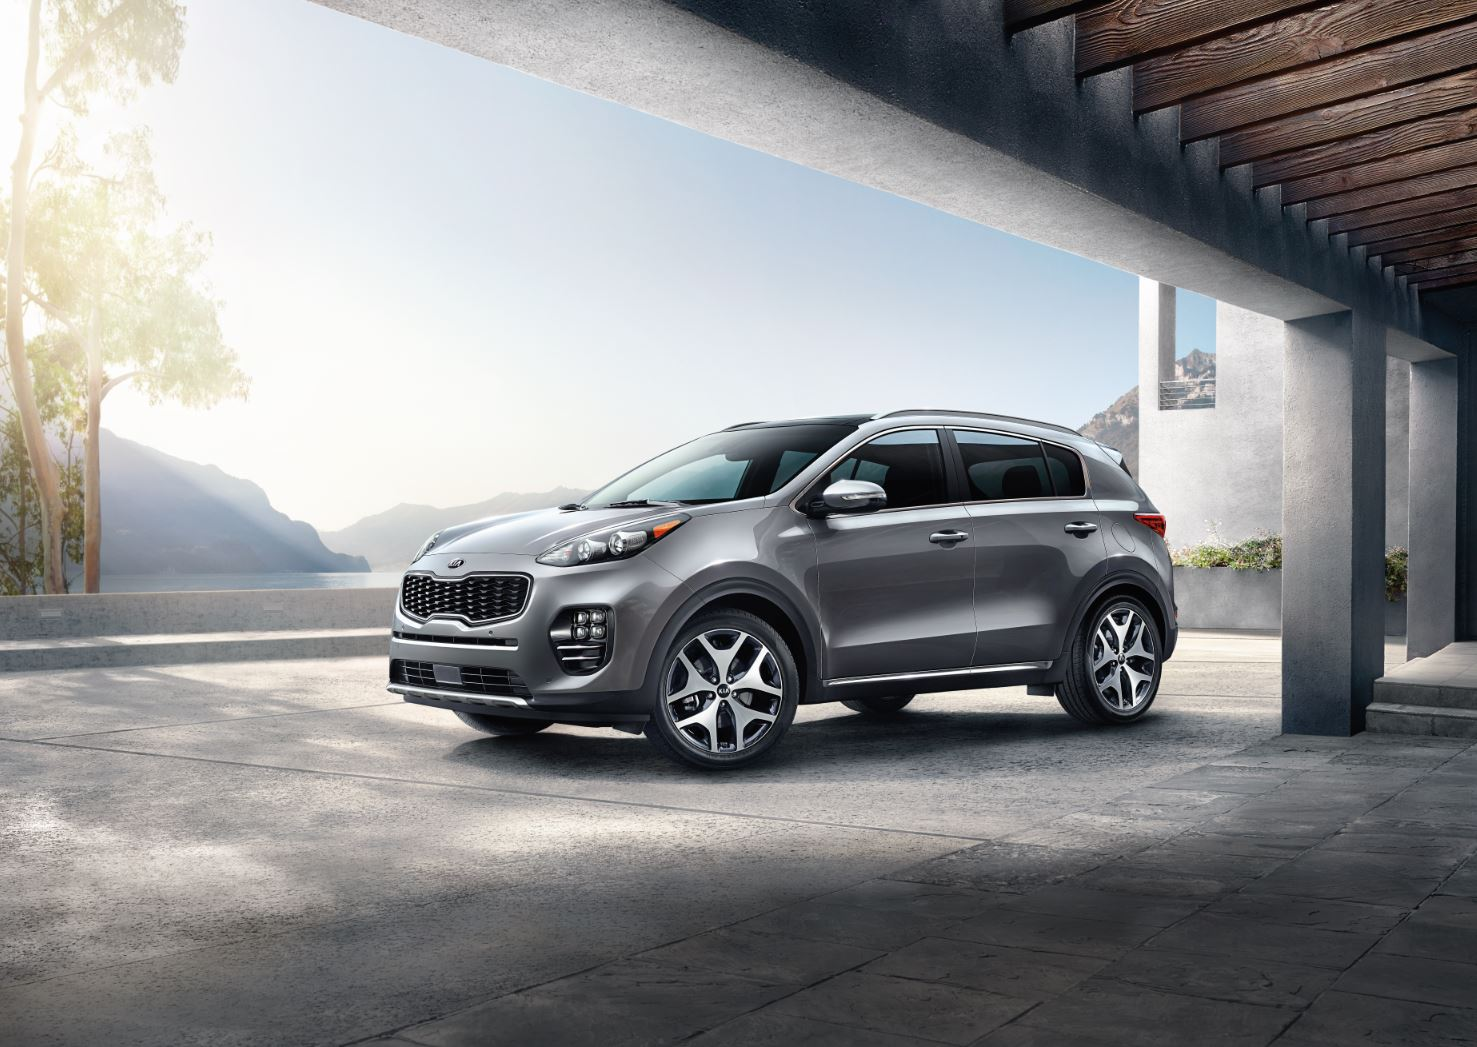 Exceptional Find A Used Kia Model At Your Local Bangor, ME Kia Dealership.